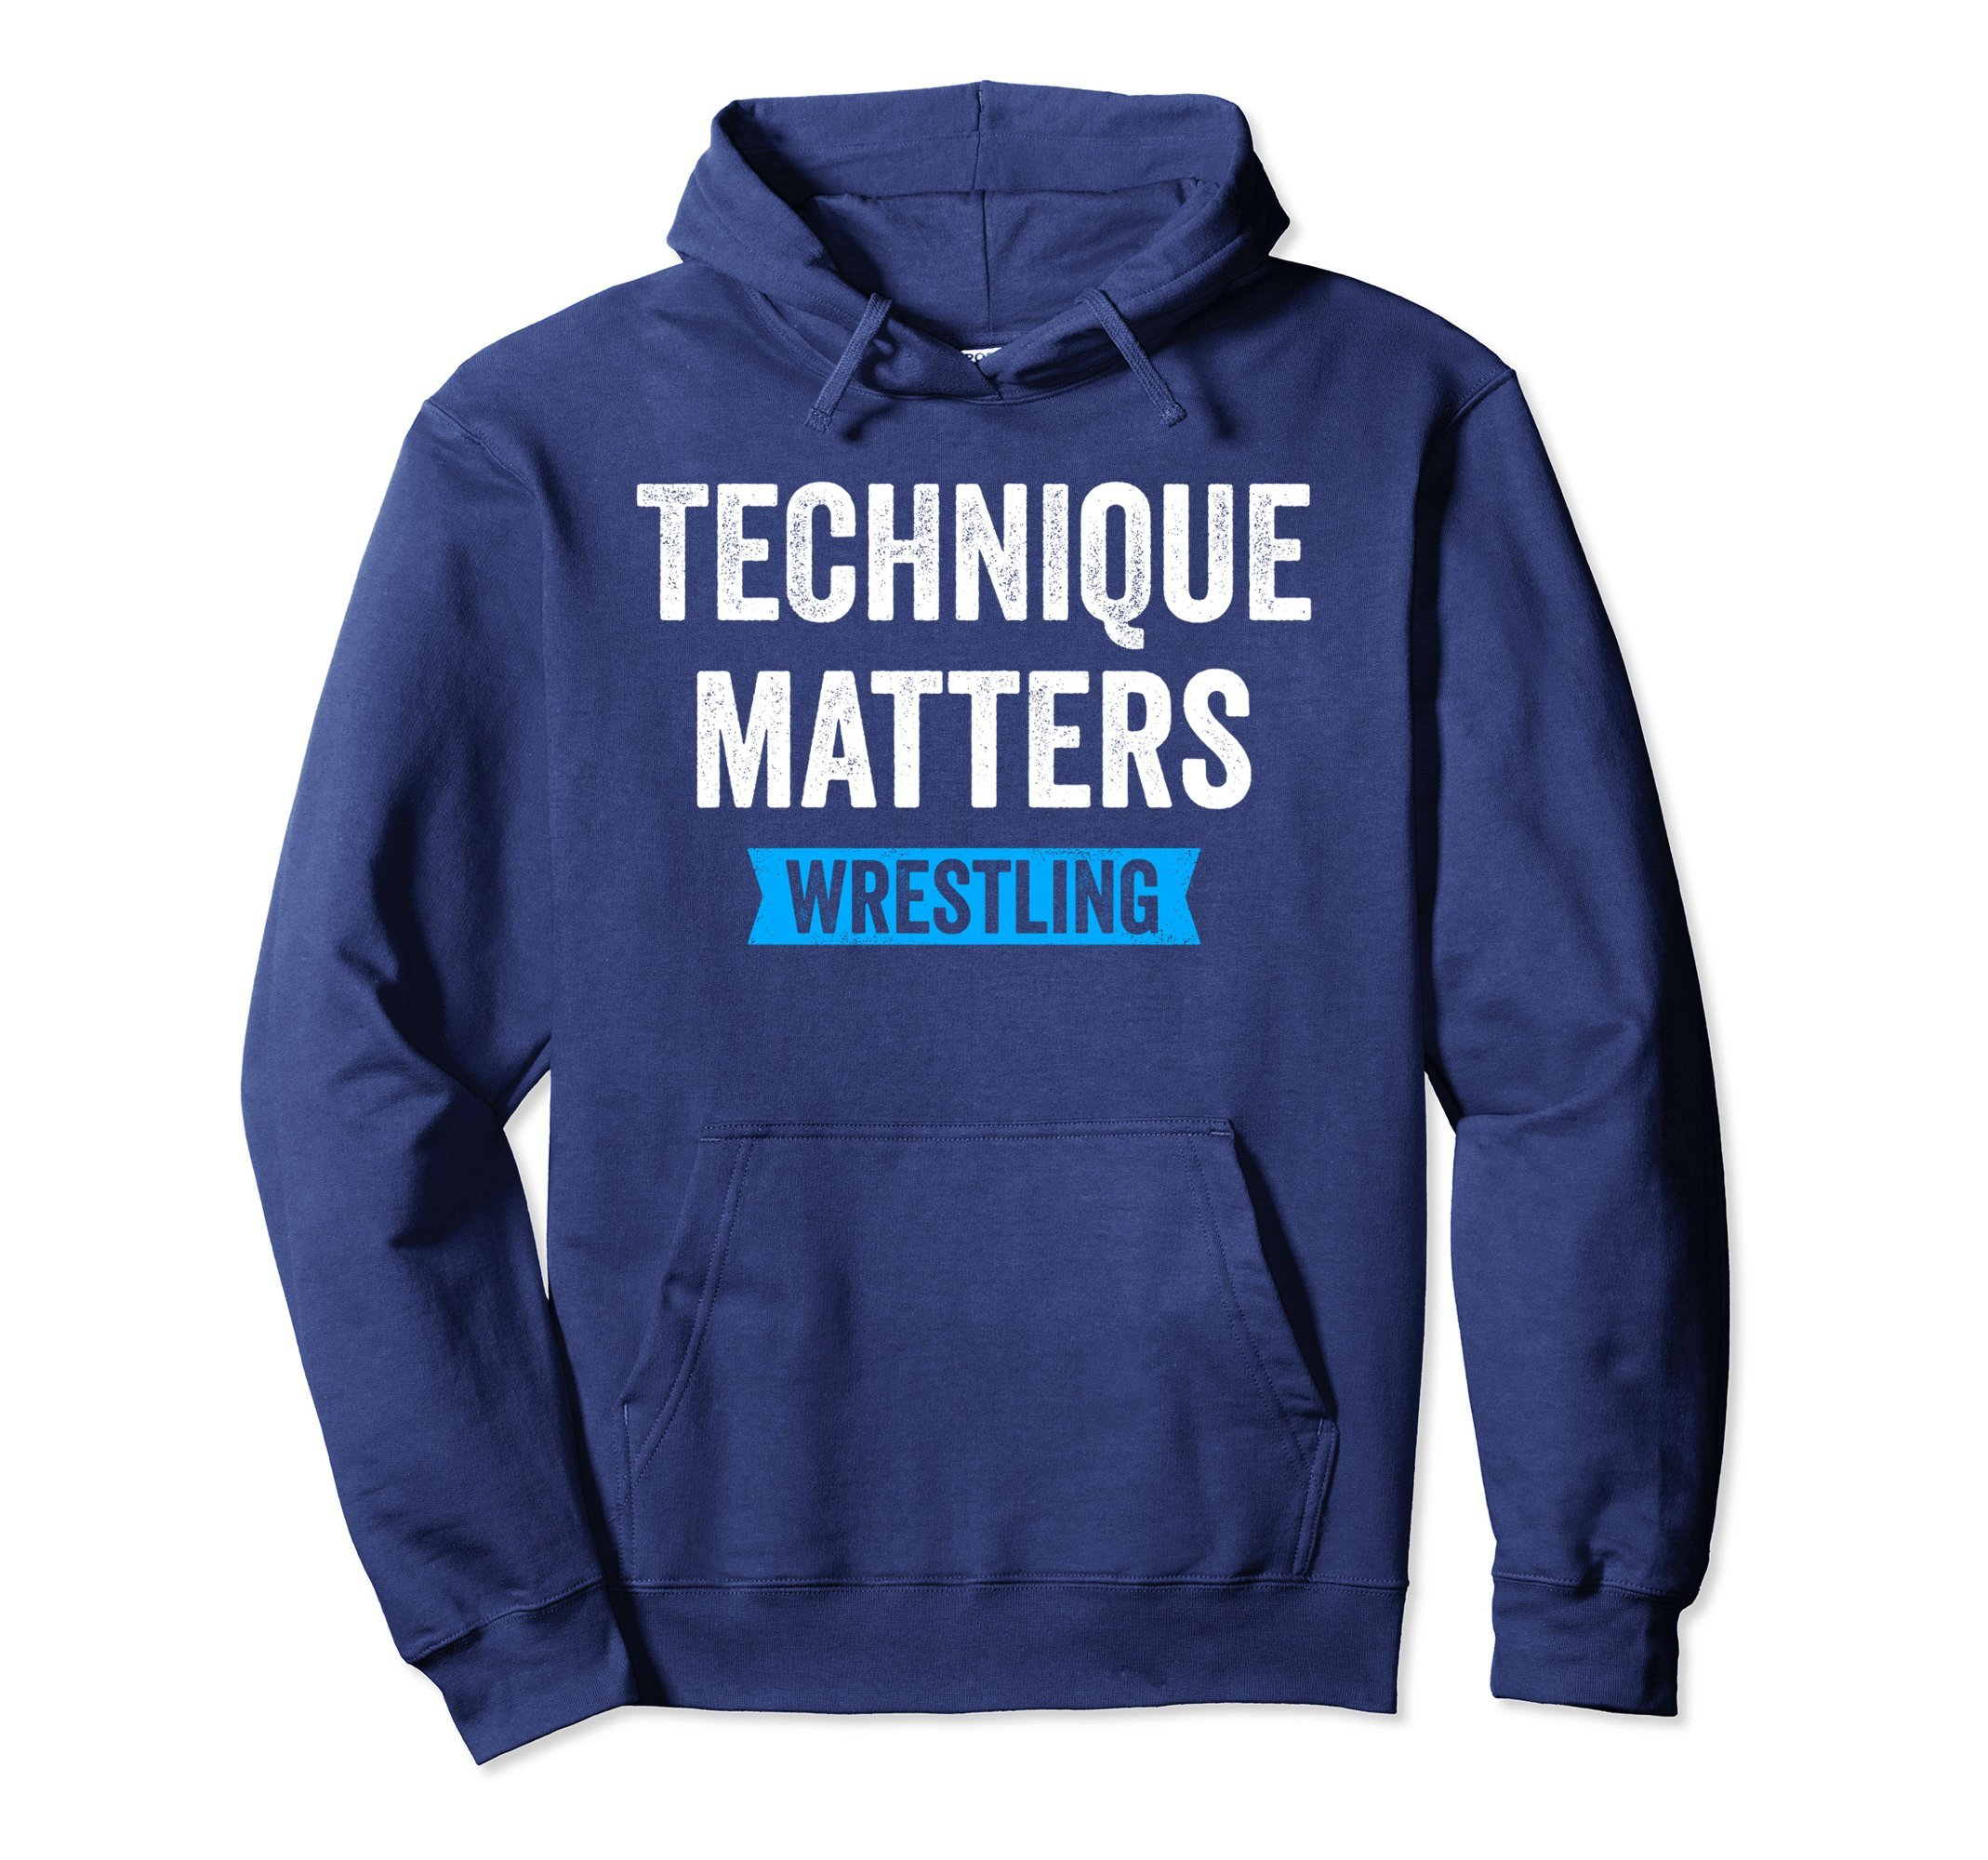 Unisex Technique Matters in Wrestling Hoodie for Wrestlers, Gift Large Navy